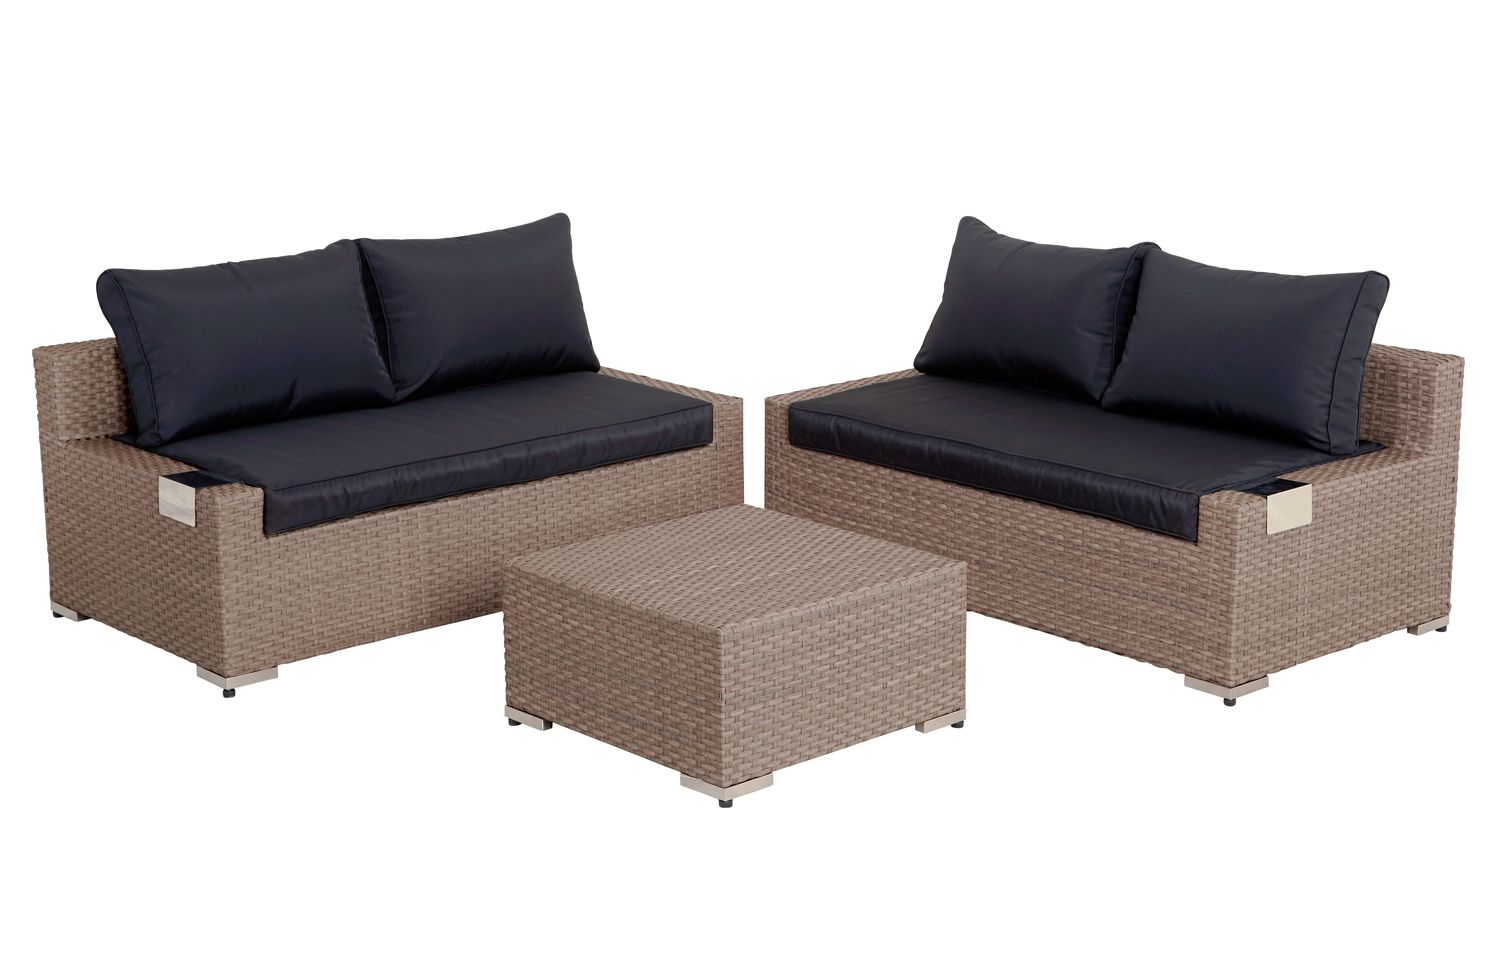 Barbeques Galore Products Europa 3 Piece Modular